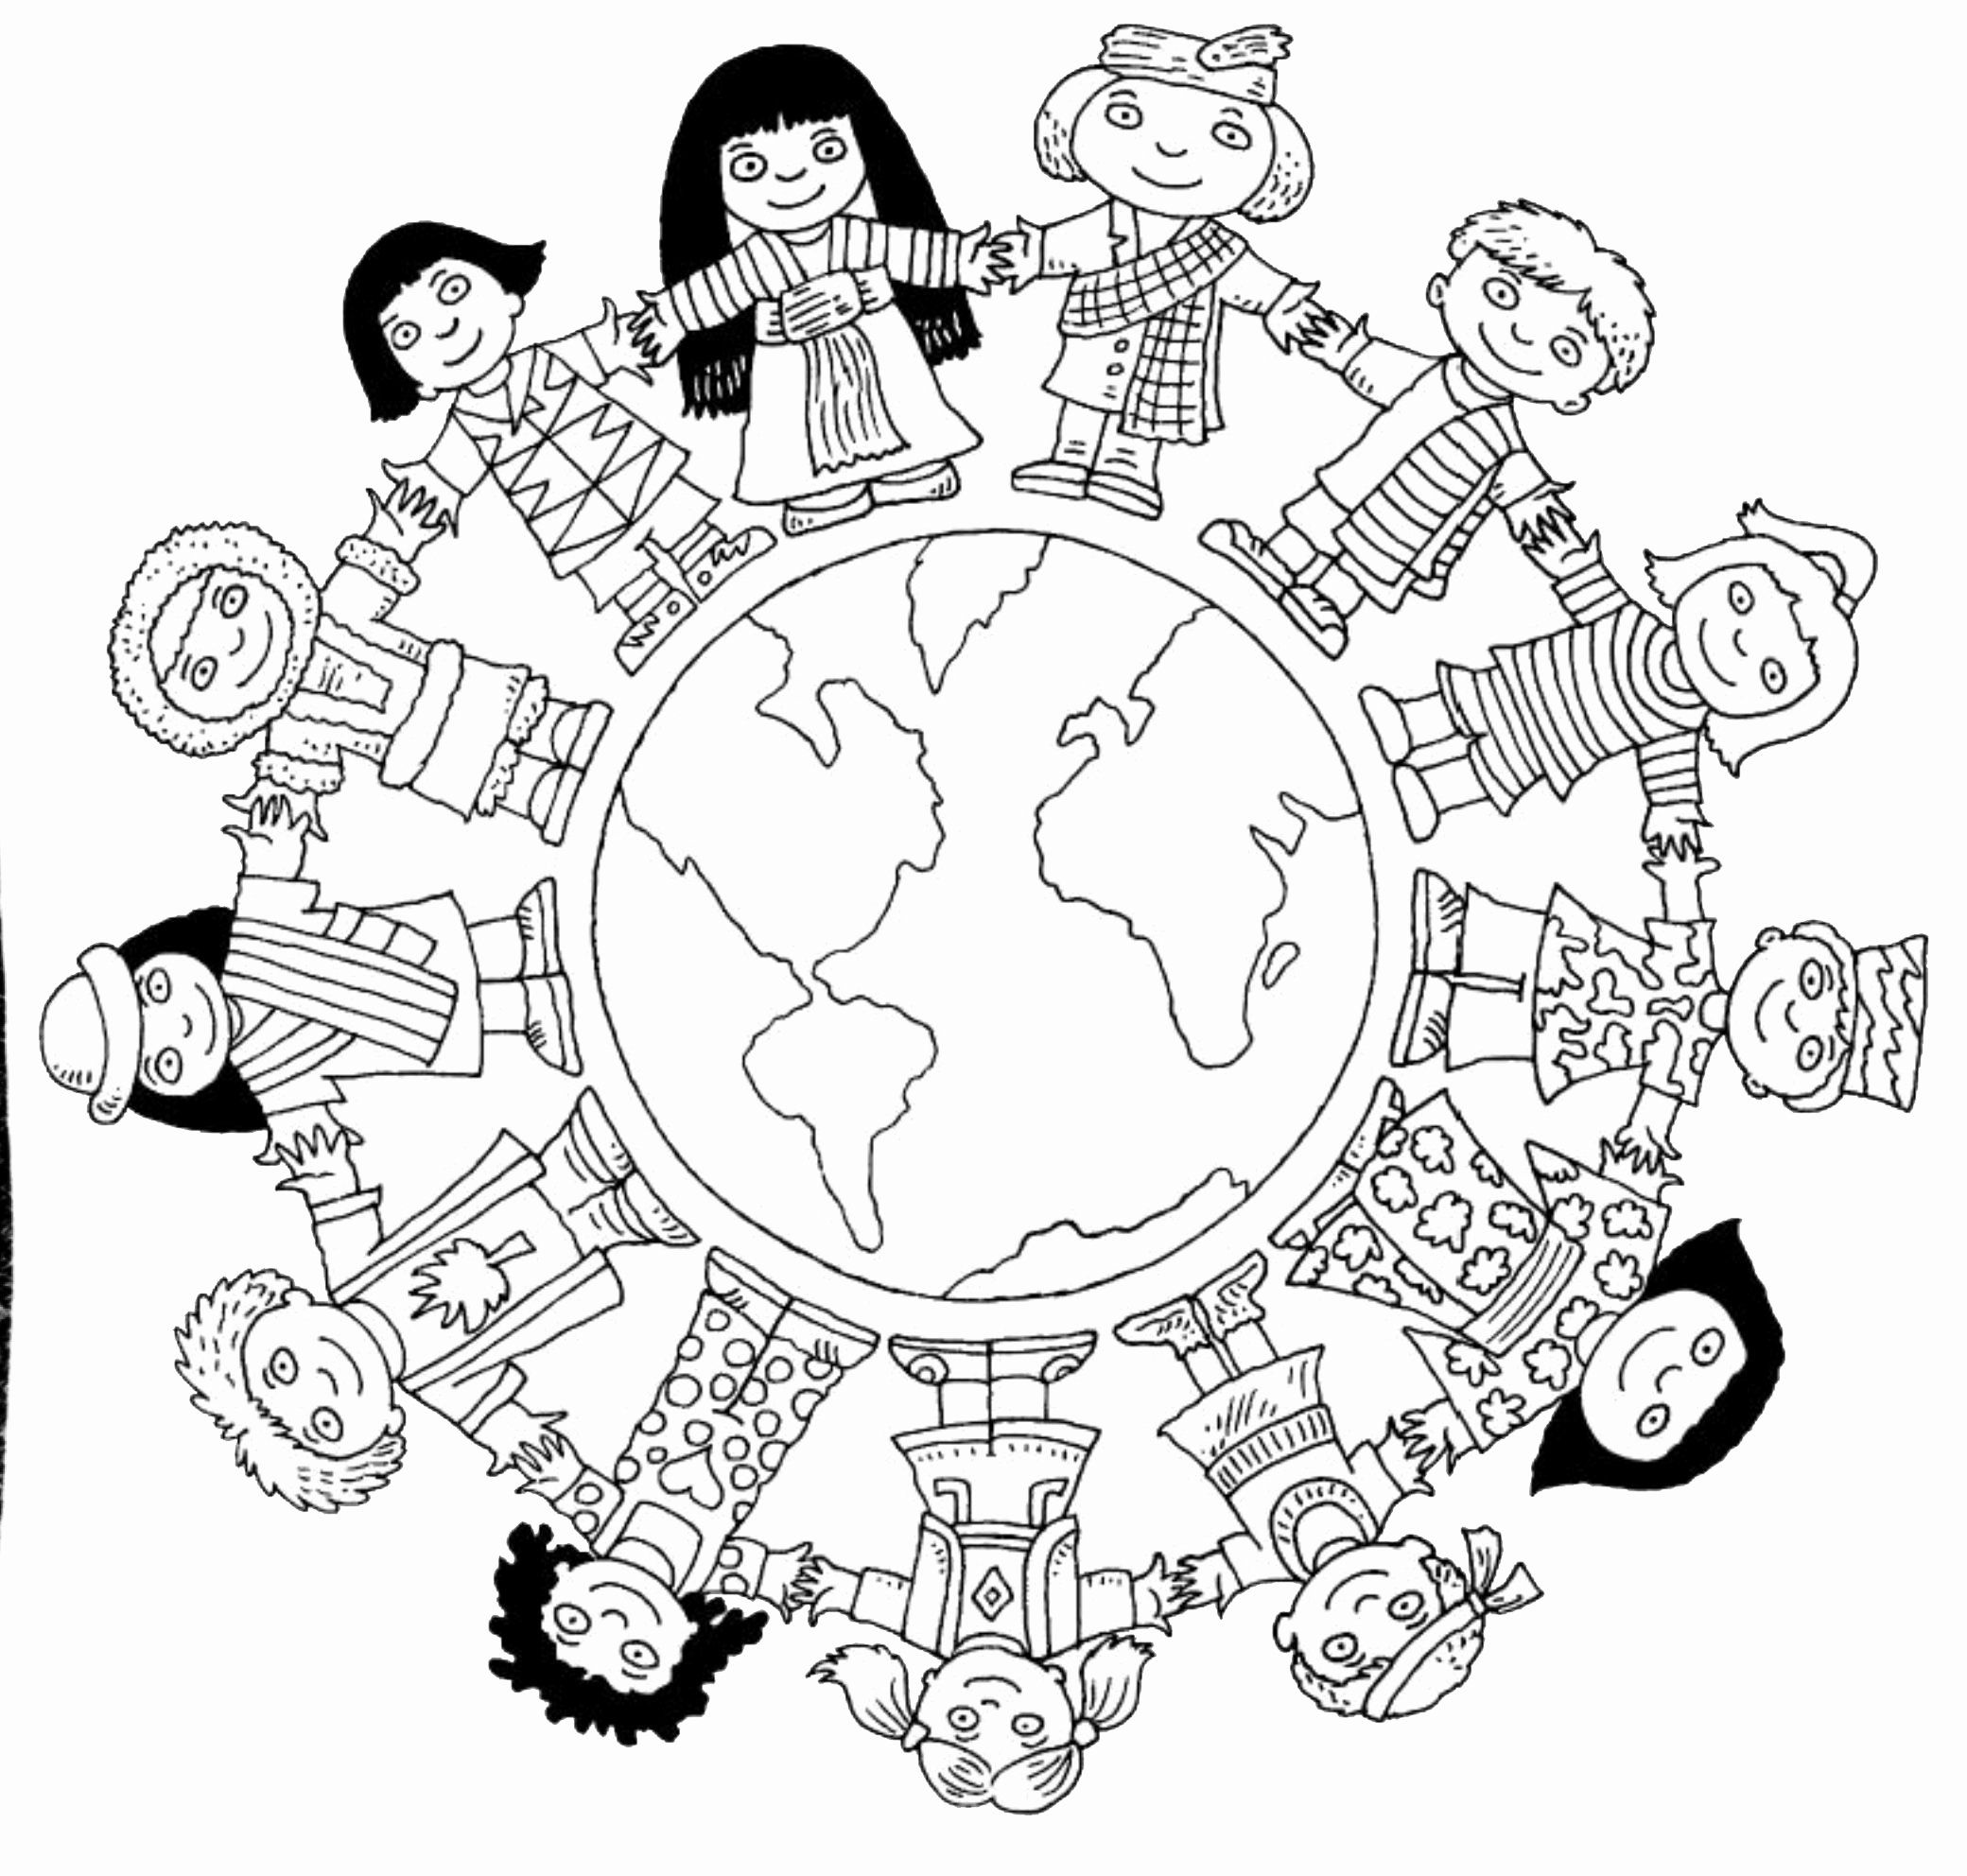 World Map Coloring Page With Countries Luxury Children Around The World Coloring Page World Map Coloring Page Coloring Pages Coloring Pages To Print